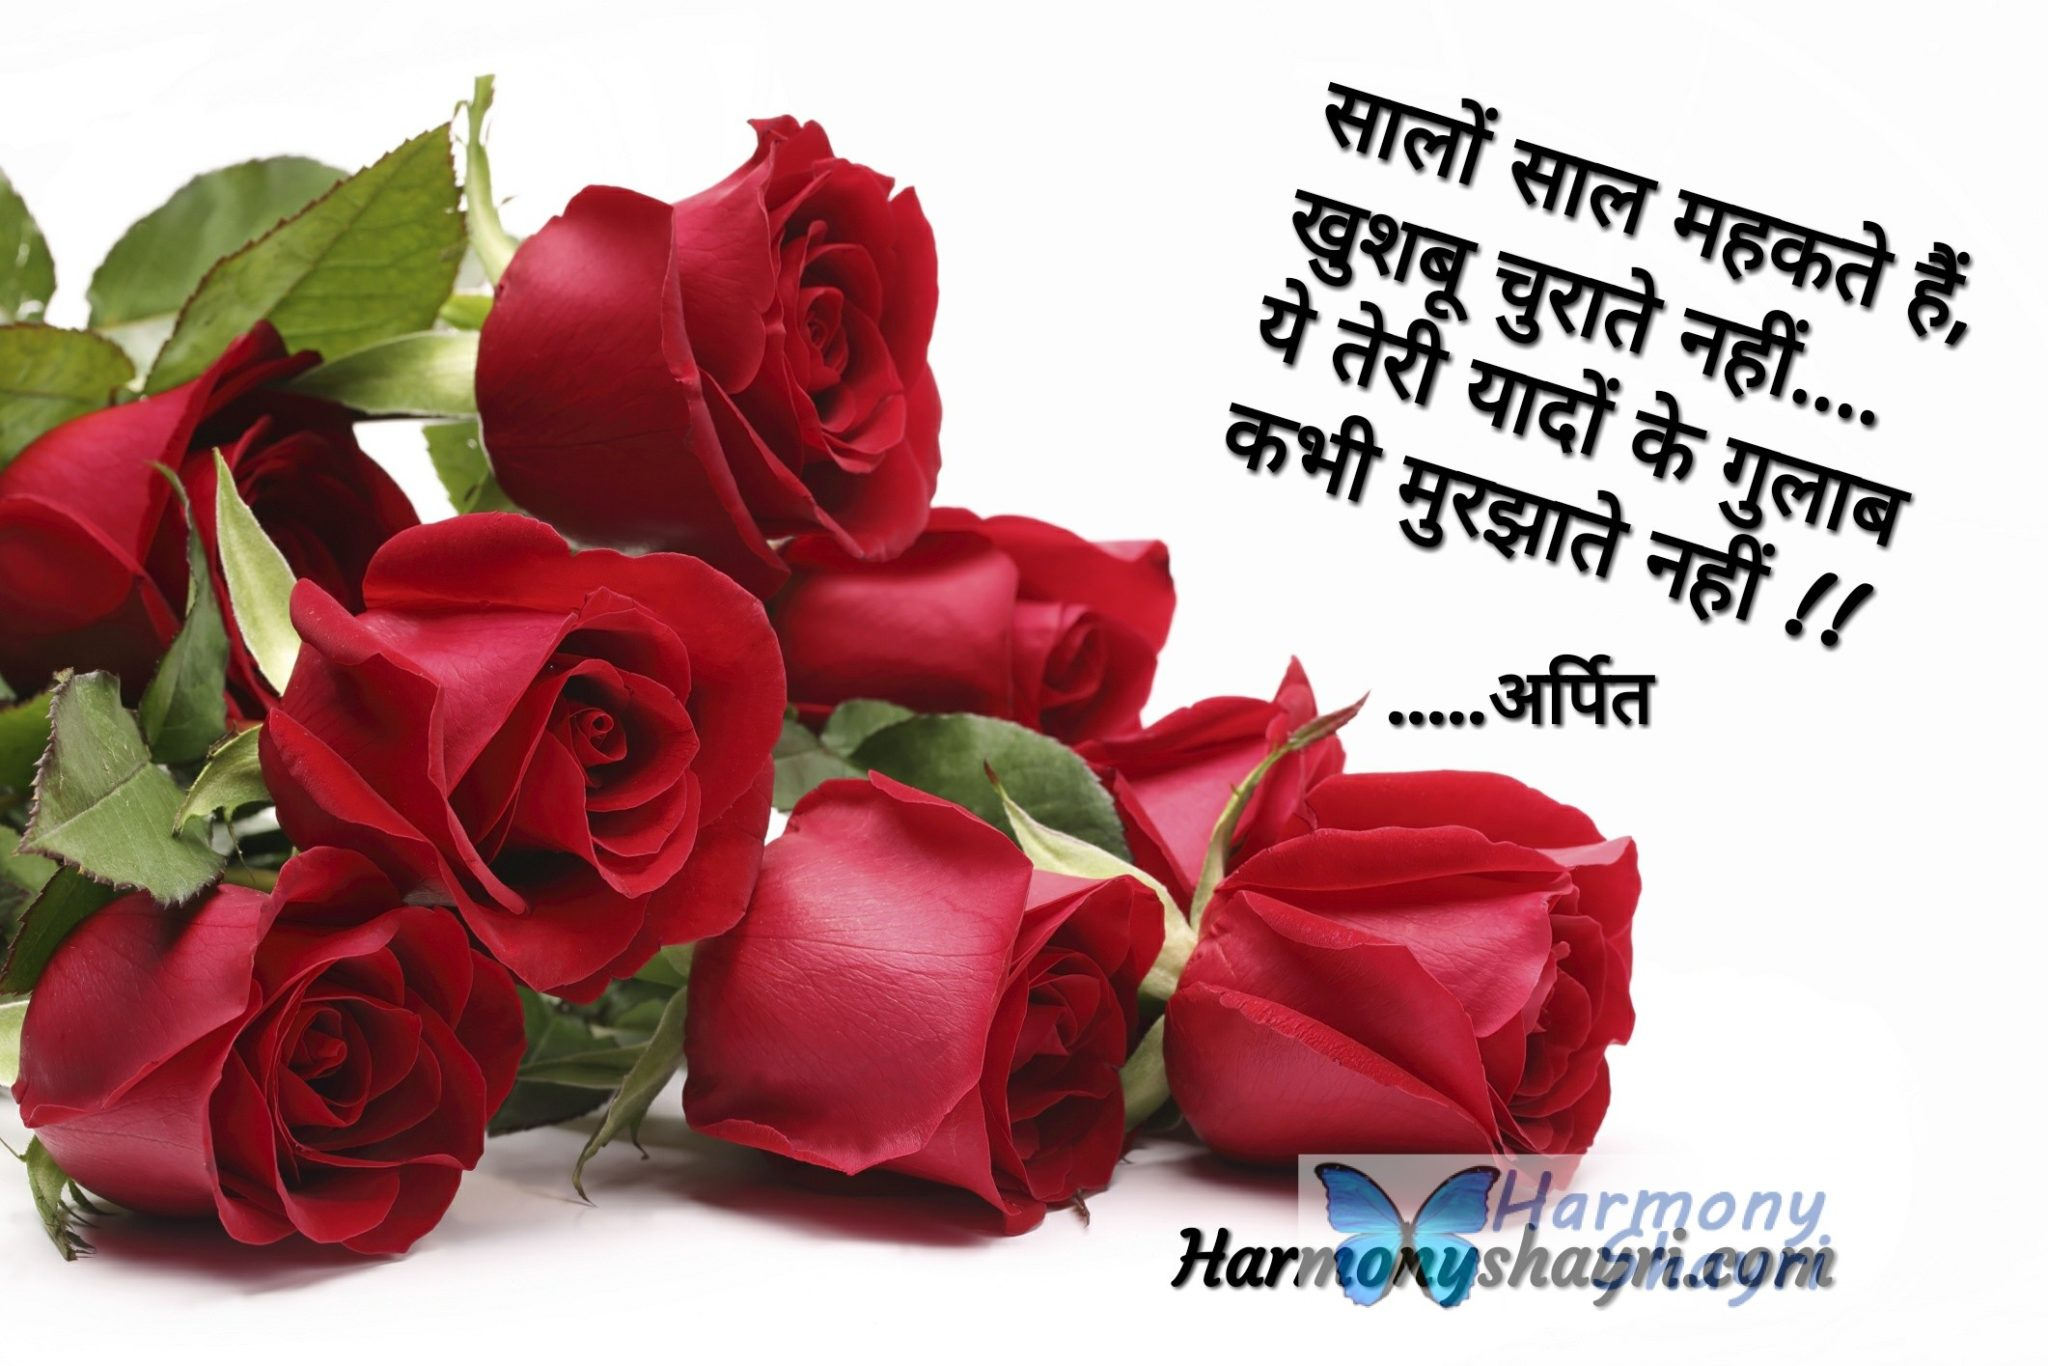 Rose Day Special Top Hindi Shayari Collection Famous Best